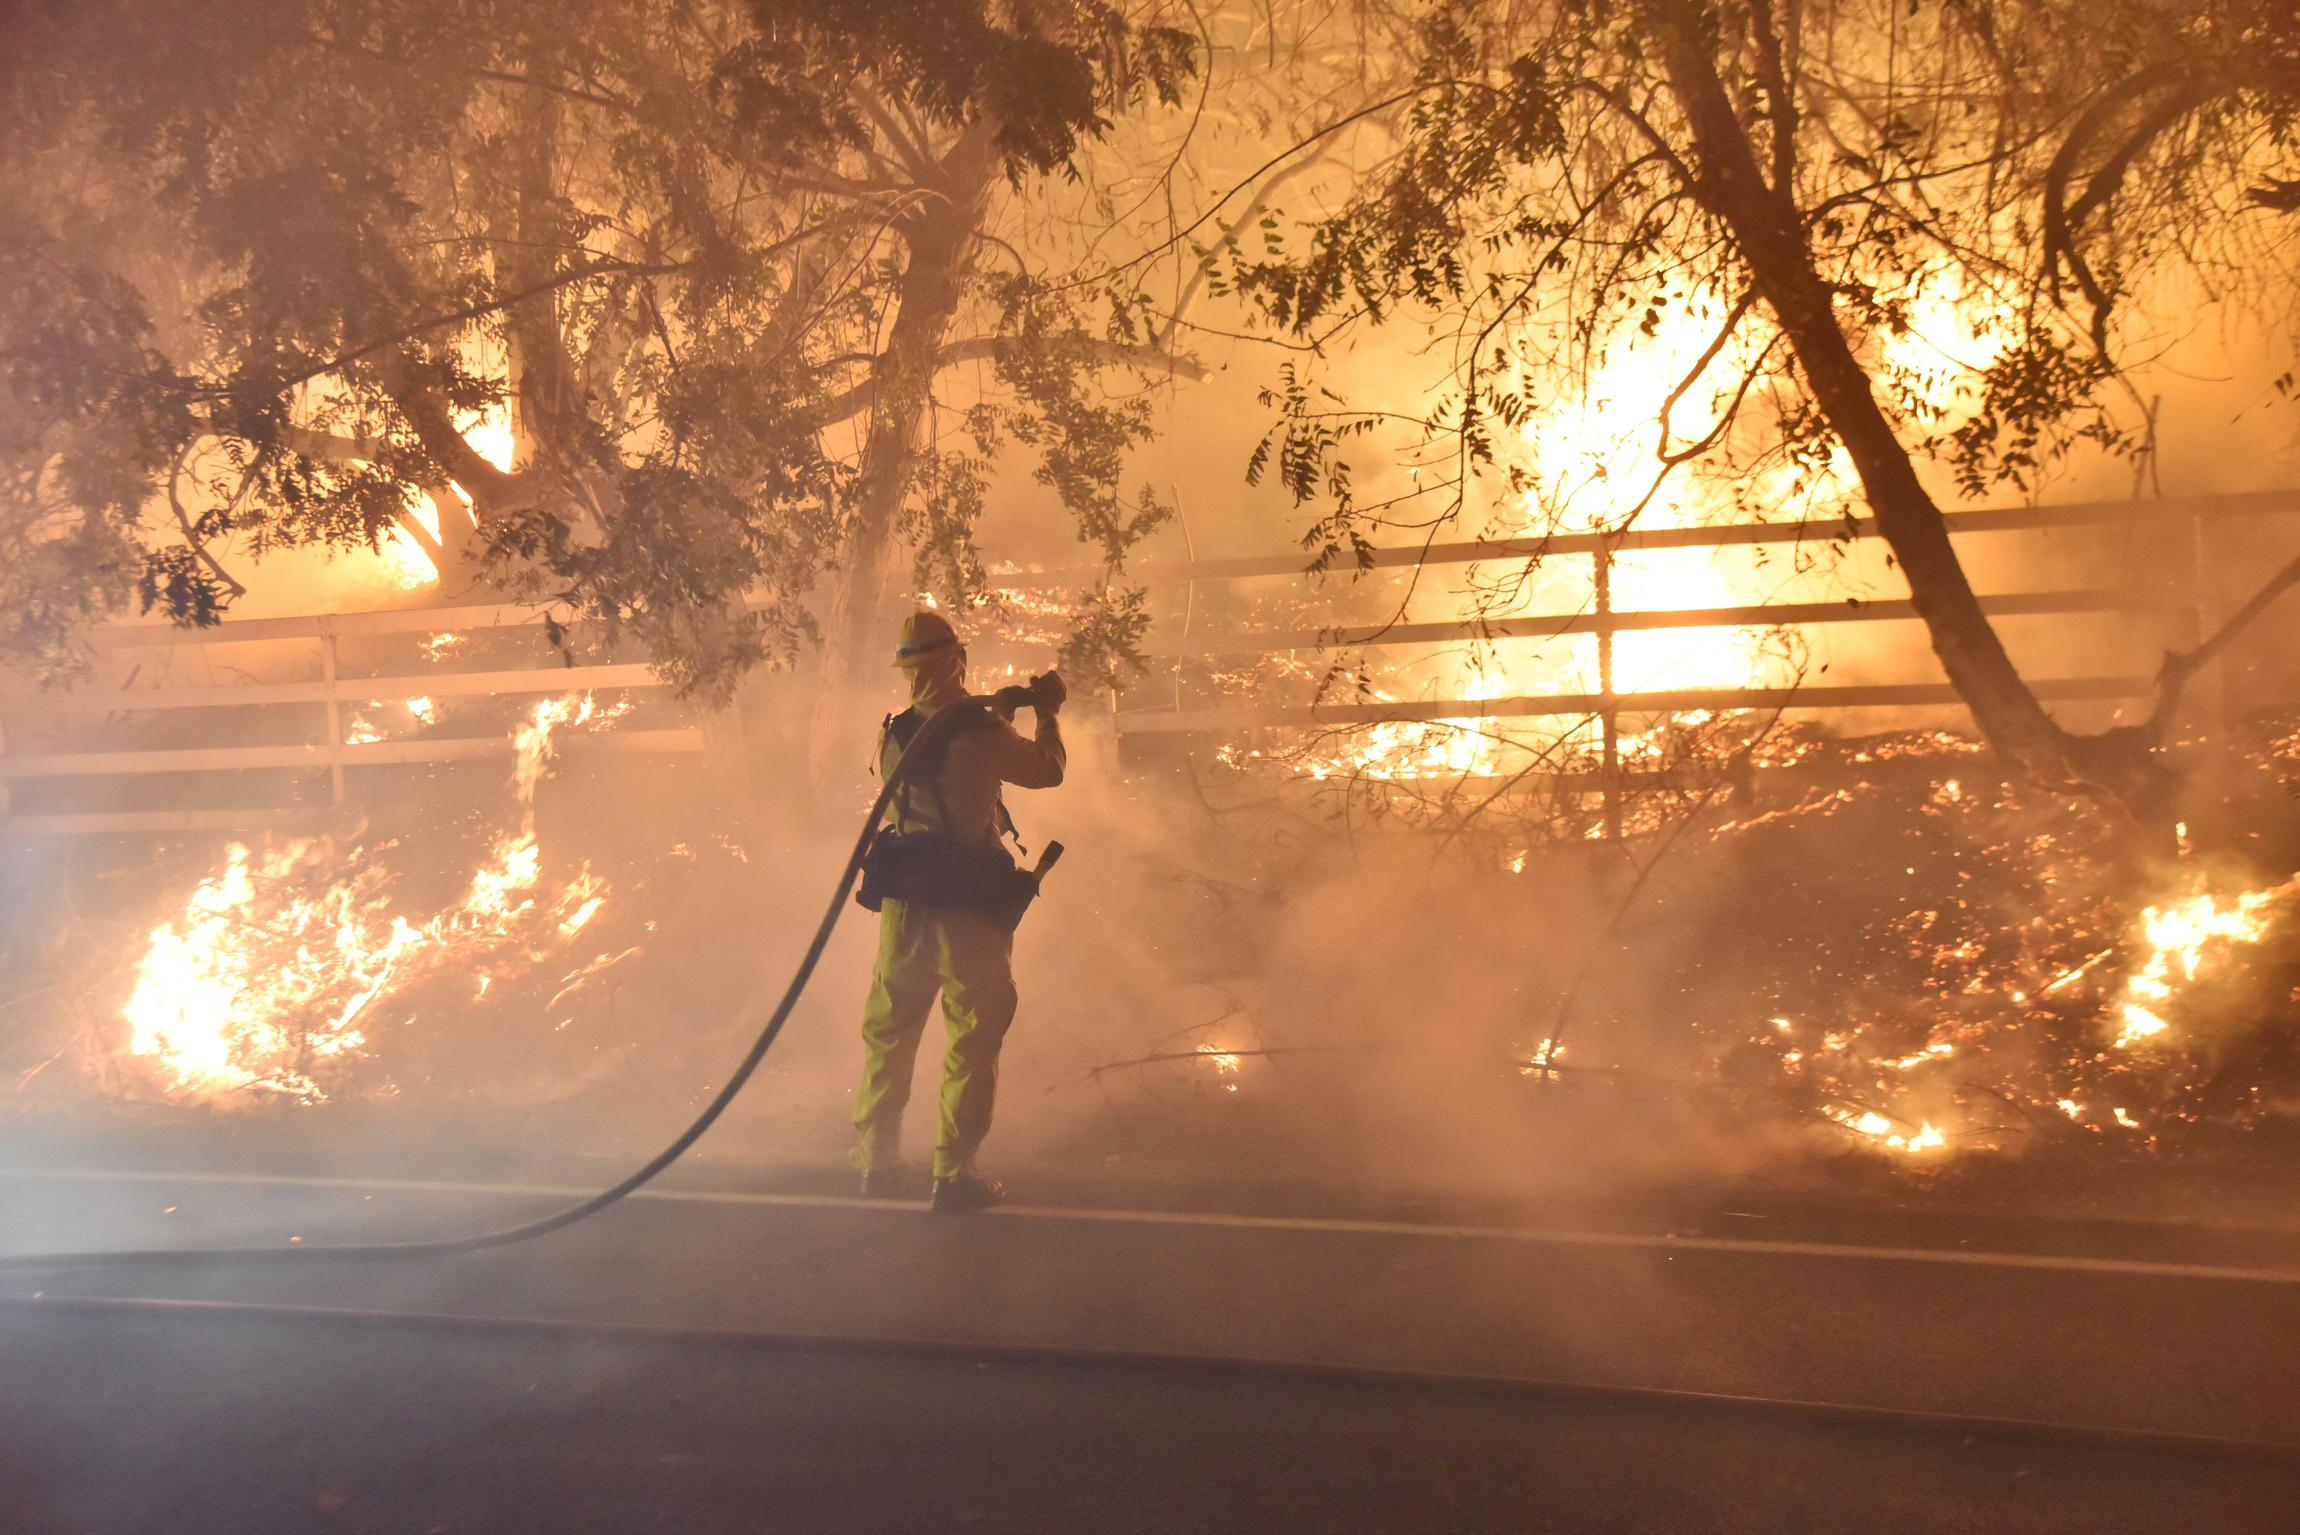 In this photo provided by the Ventura County Fire Department, a firefighter works to put out a blaze early Tuesday, Dec. 5, 2017, in Santa Paula, Calif. Authorities said the file broke out Monday and grew wildly in the hours that followed, consuming vegetation that hasn't burned in decades. (Ryan Cullom/Ventura County Fire Department via AP)